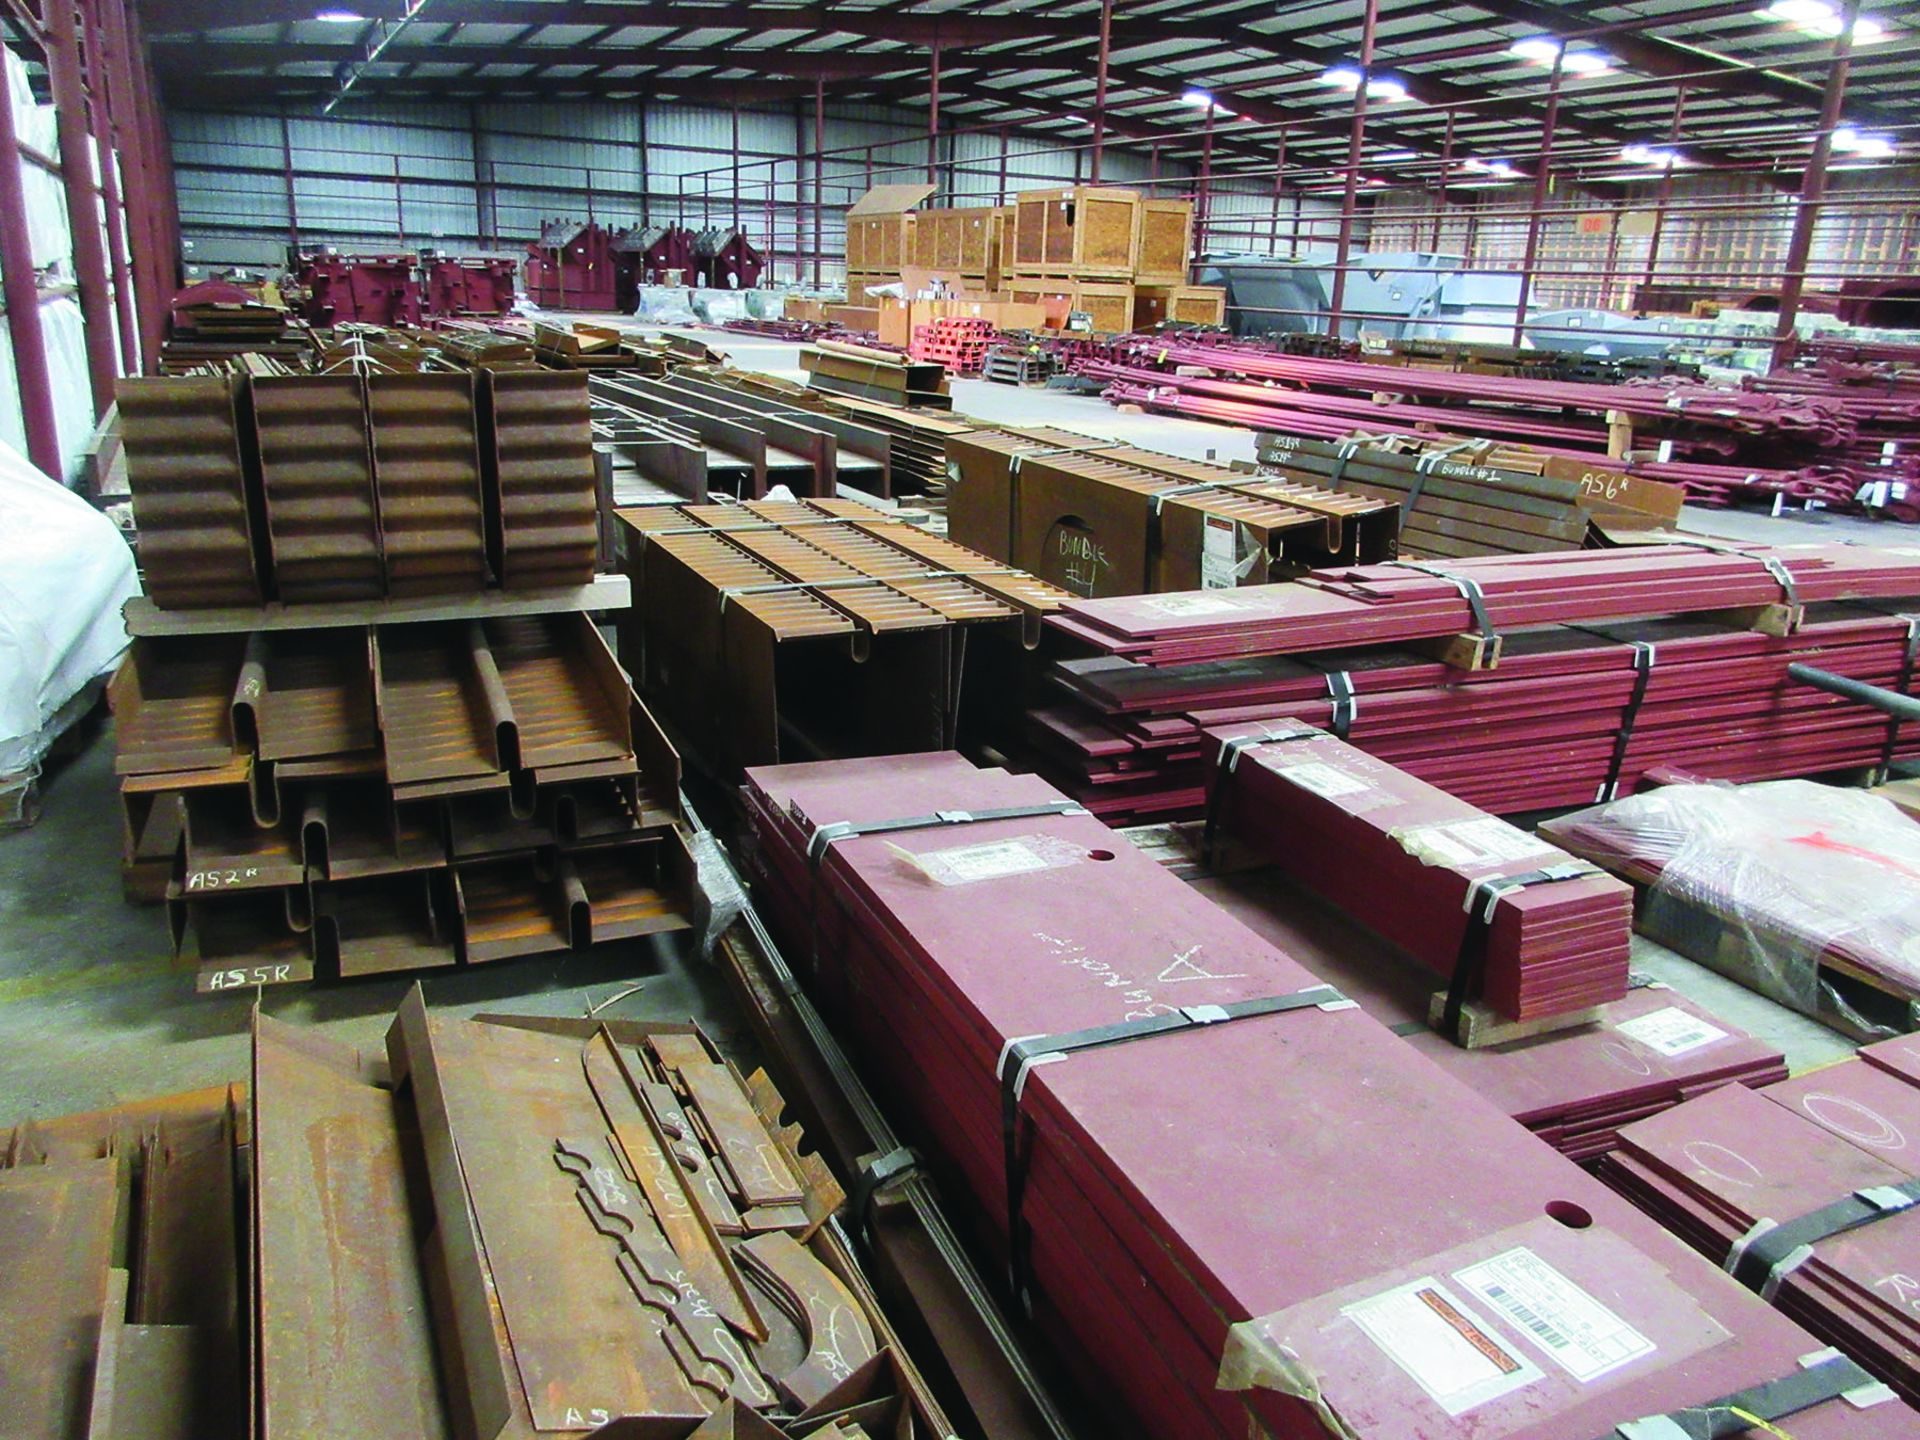 LARGE LOT OF STRUCTURAL STEEL & SPRING CANS, ANGLE IRON, PLATE BRACKETS, BRACING, GRID C5 - Image 19 of 21